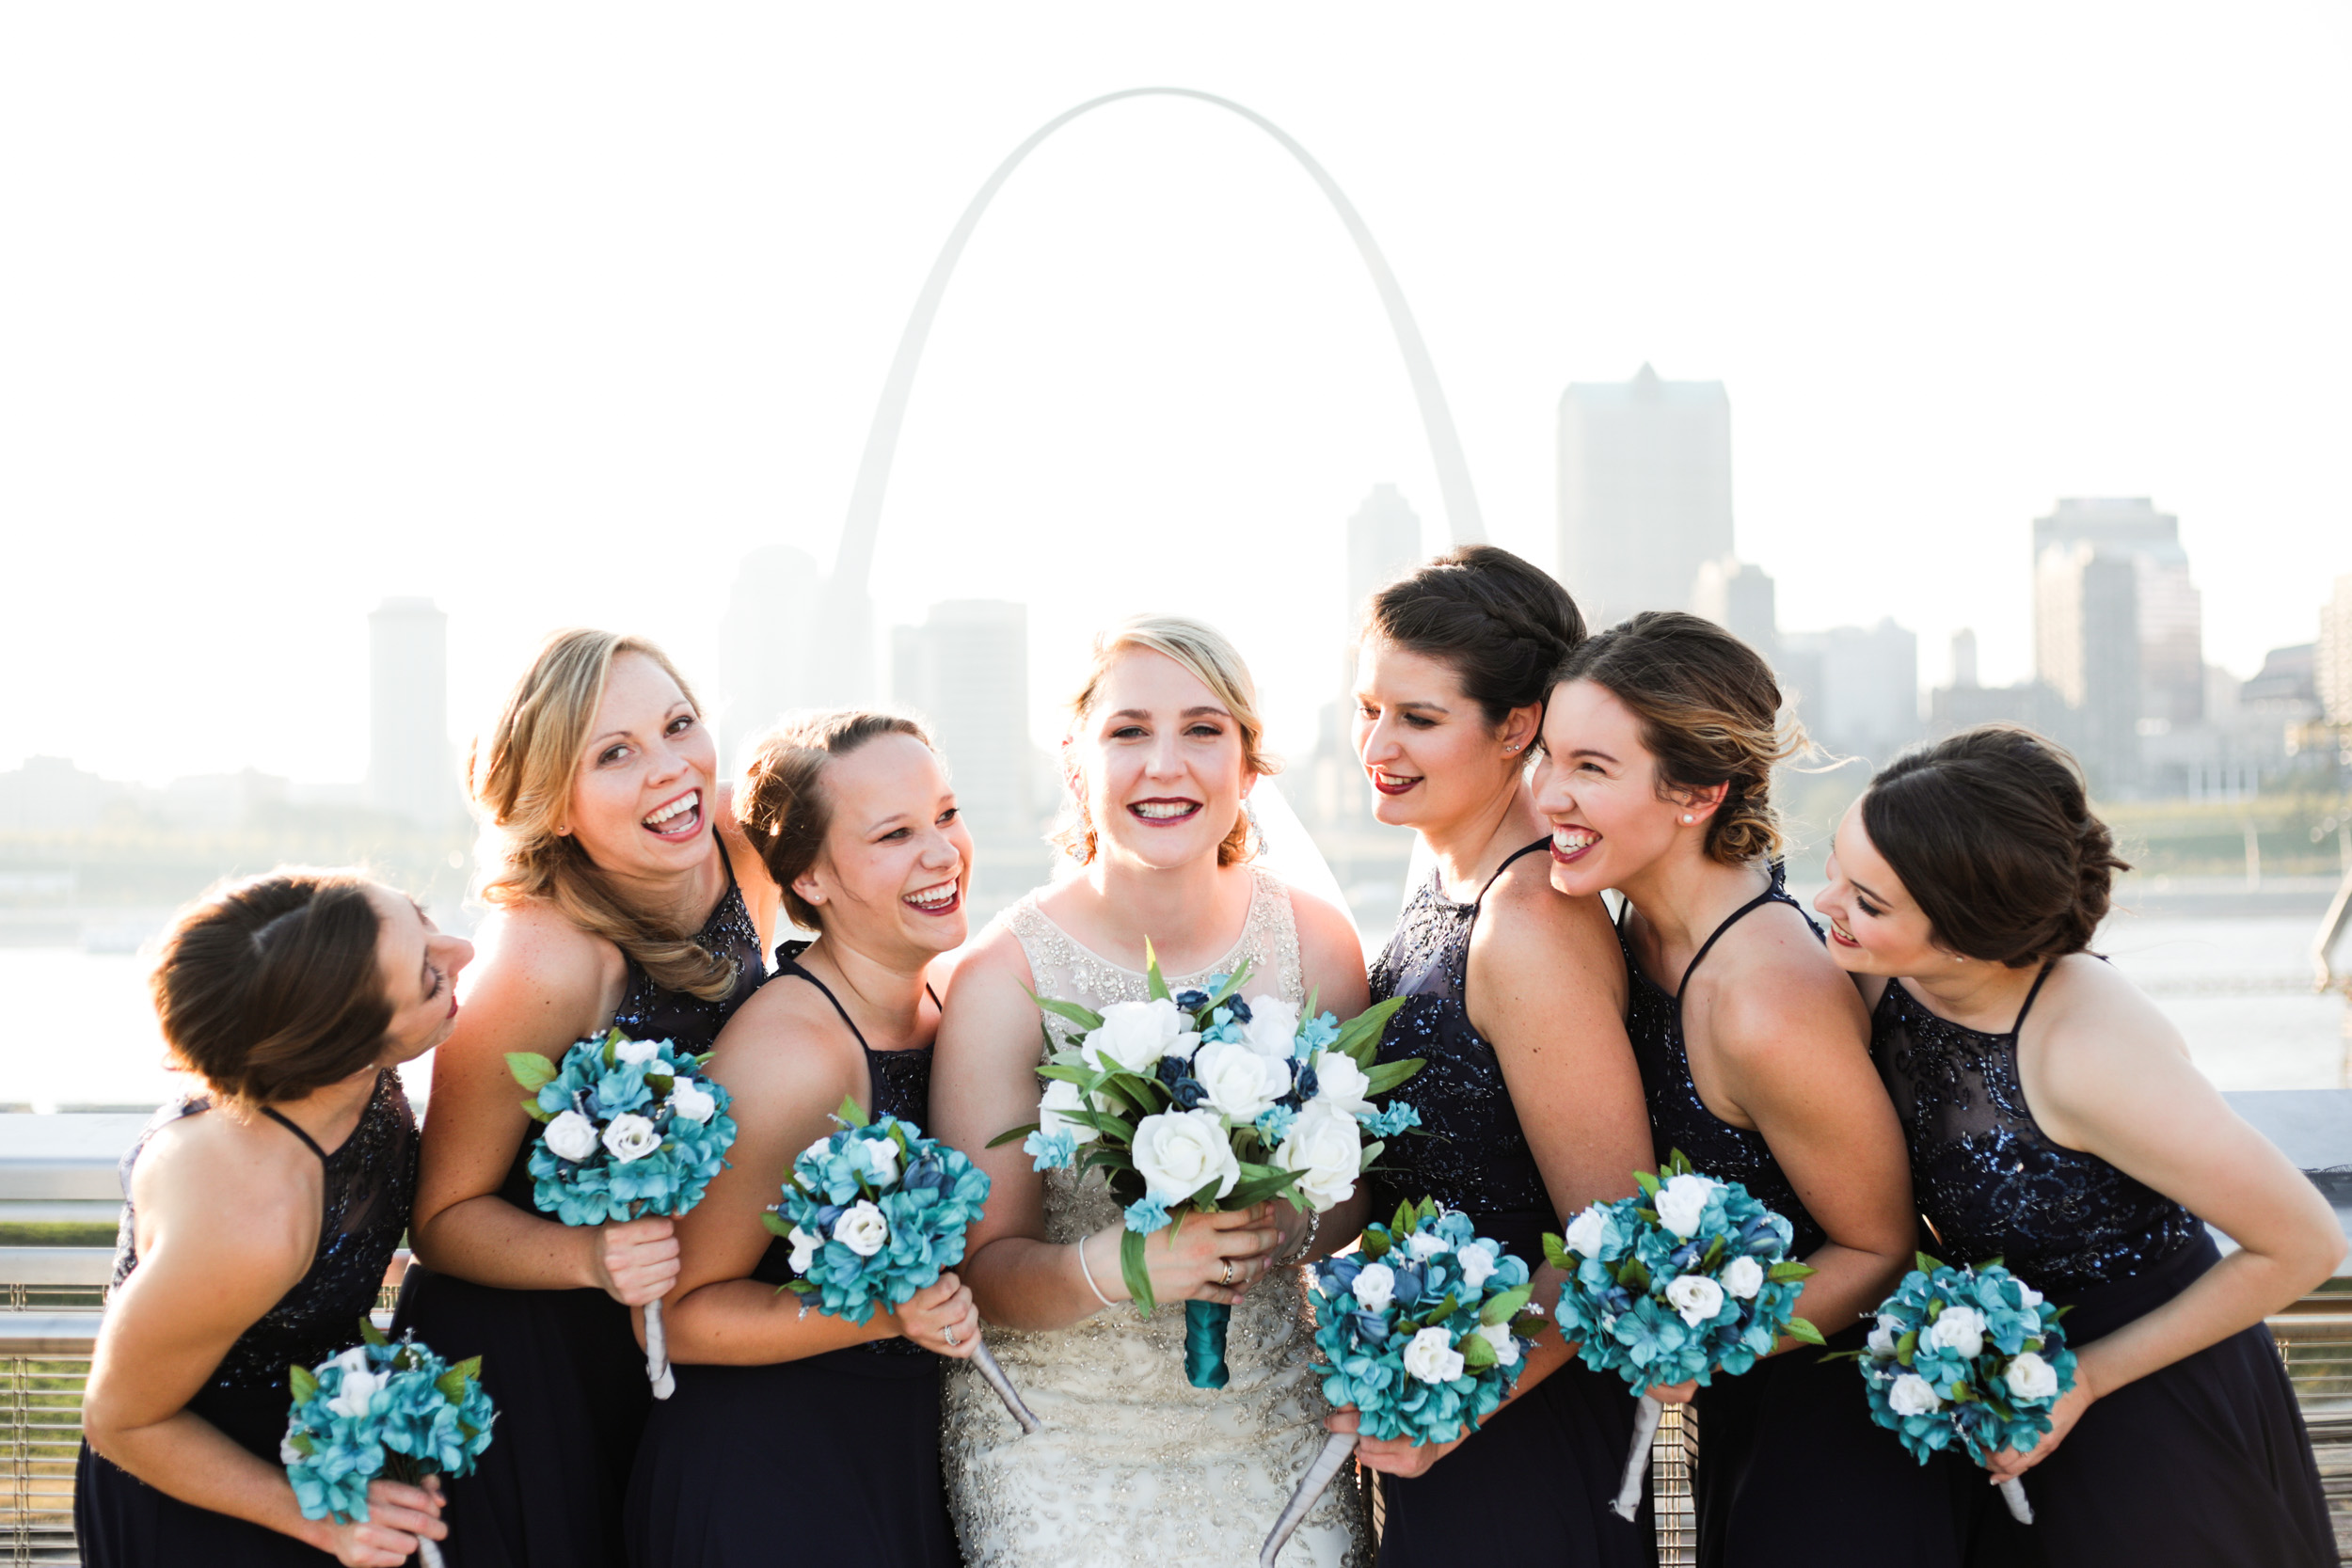 Winstanley Baptist Church Wedding and Four Points by Sheraton Reception Photos by St Louis Wedding Photographers and Videographers Oldani Photography 134.jpg